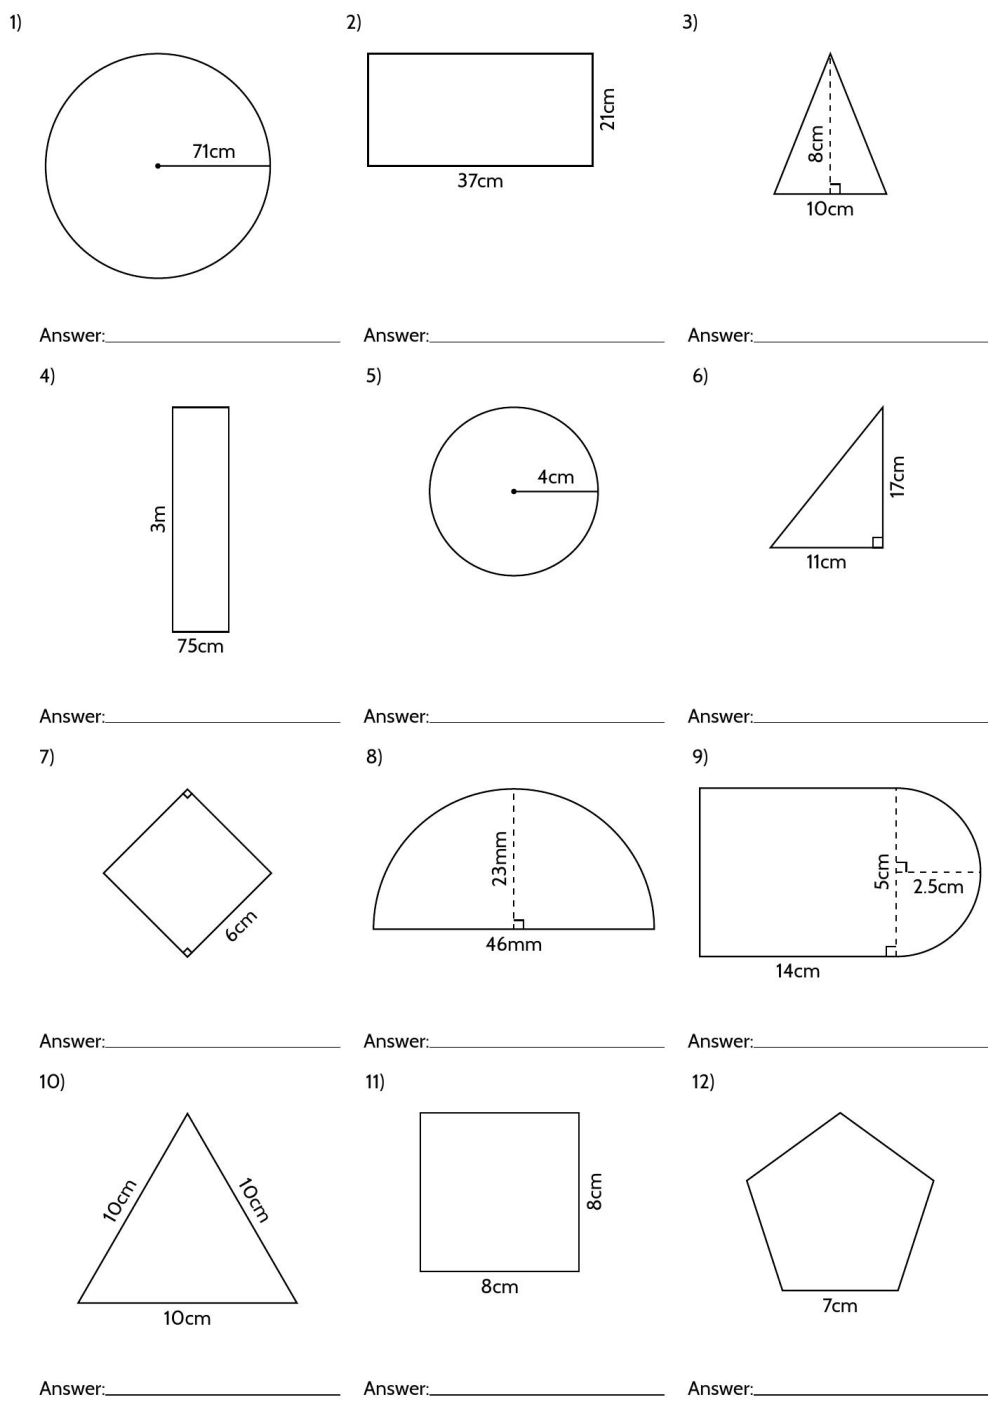 medium resolution of Geomery Volume 6th Grade Worksheets   Printable Worksheets and Activities  for Teachers